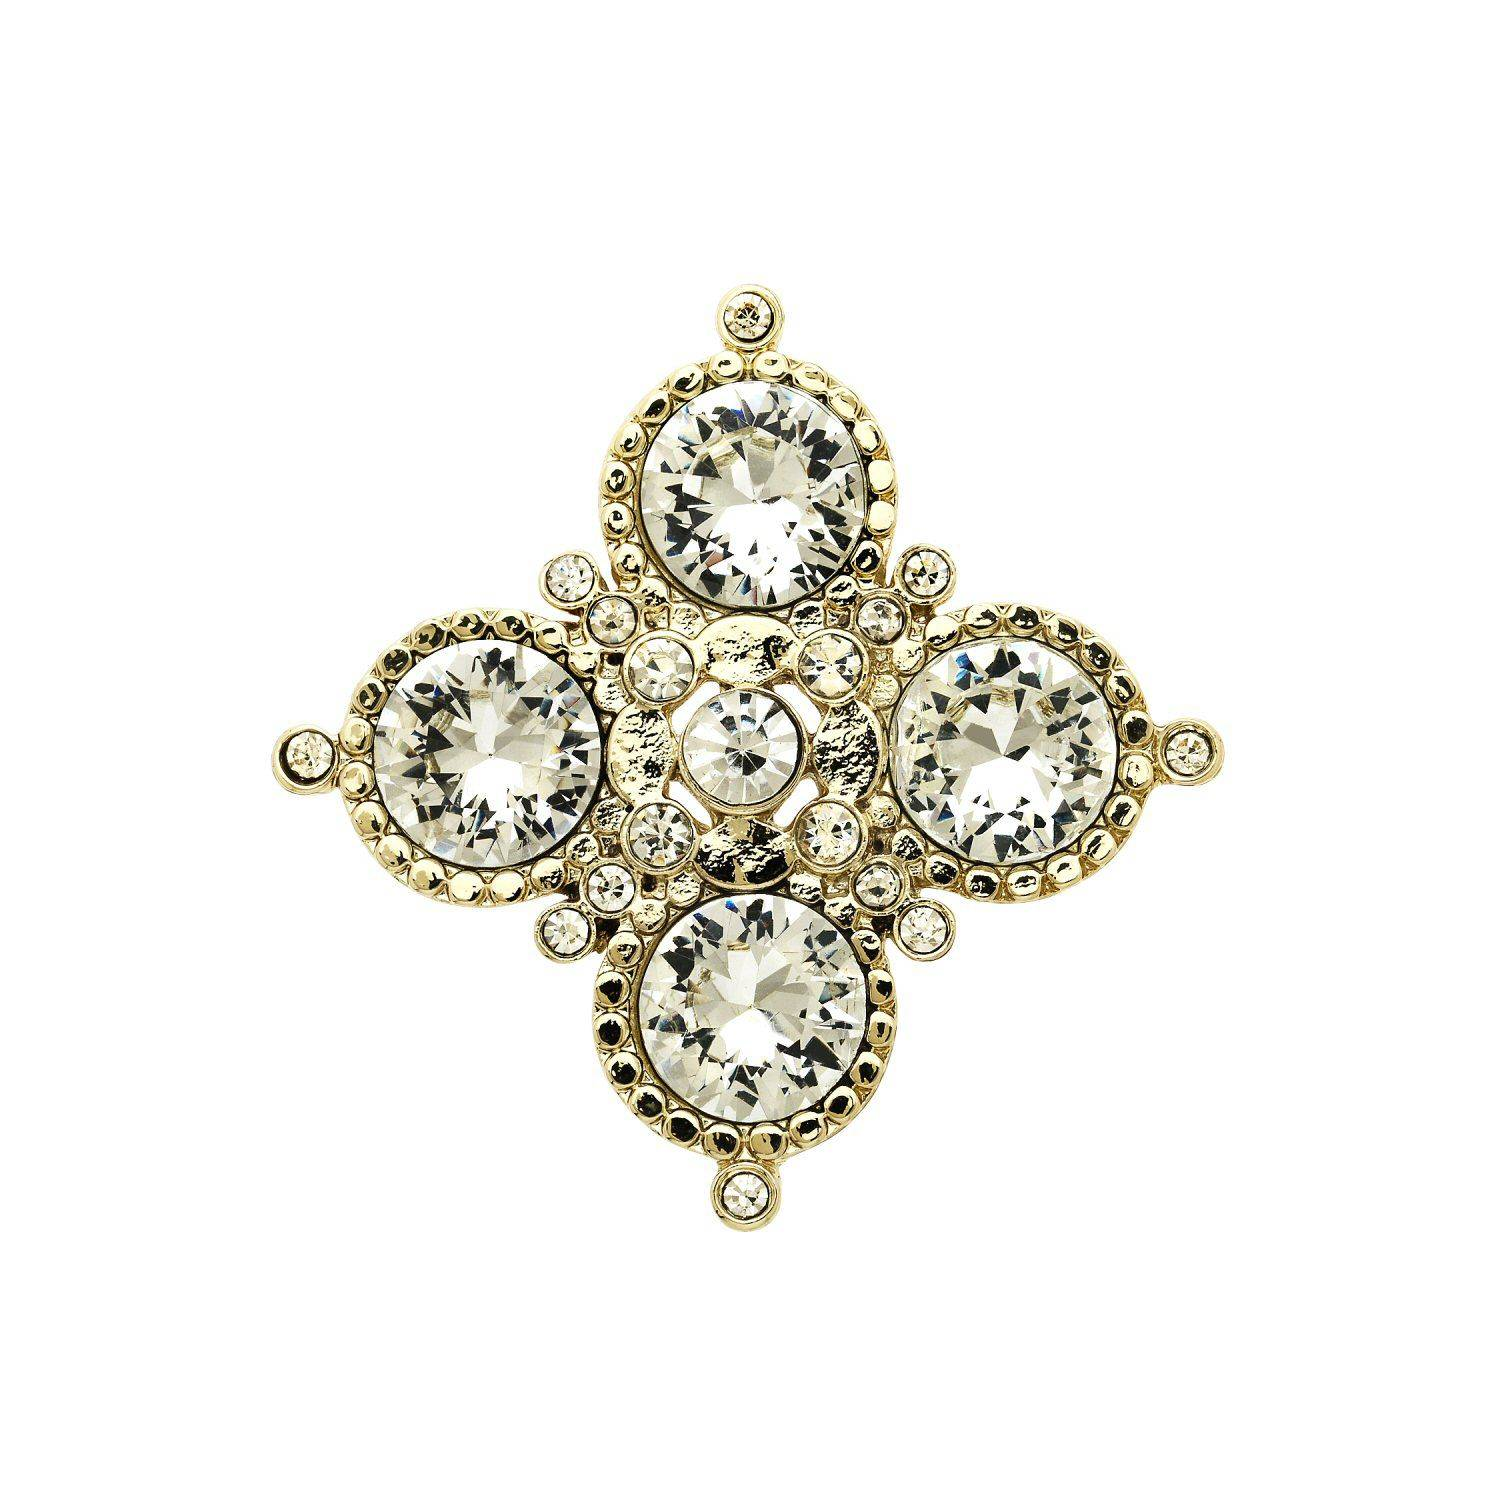 Monet Gold and crystal medal brooch